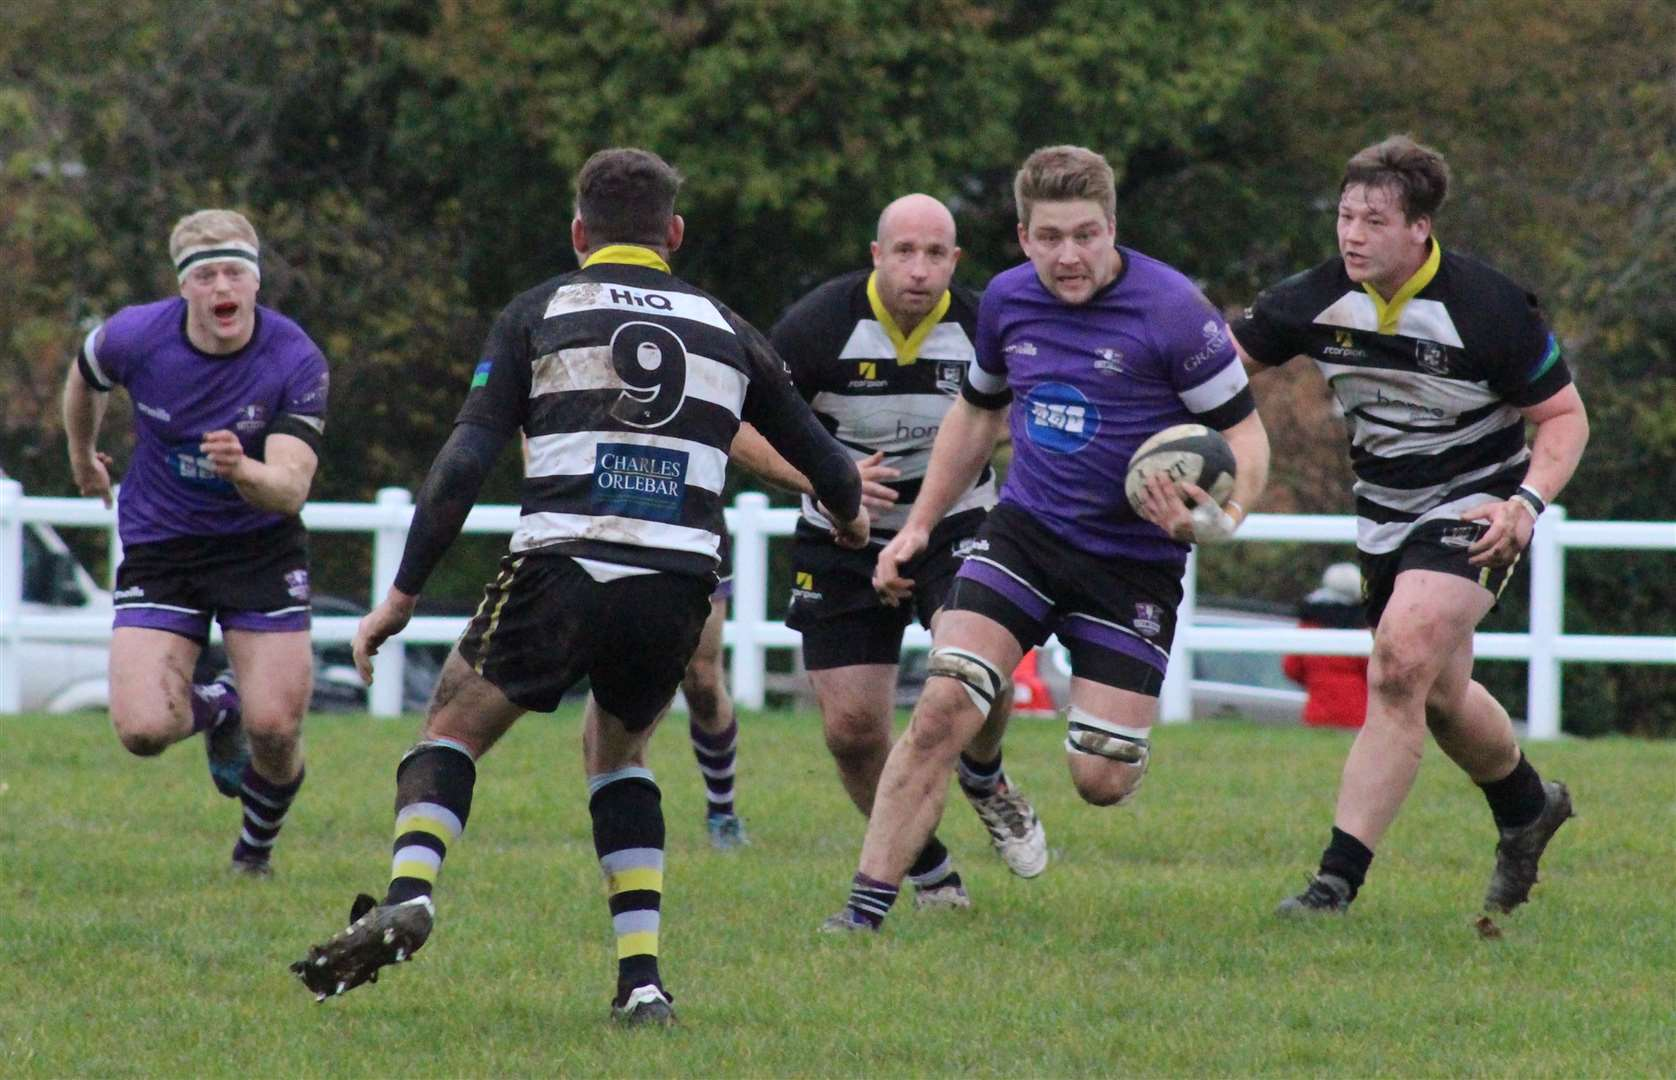 Action from Stamford's victory at Rushden & Higham on Saturday. Photo: Darren Dolby (21889412)